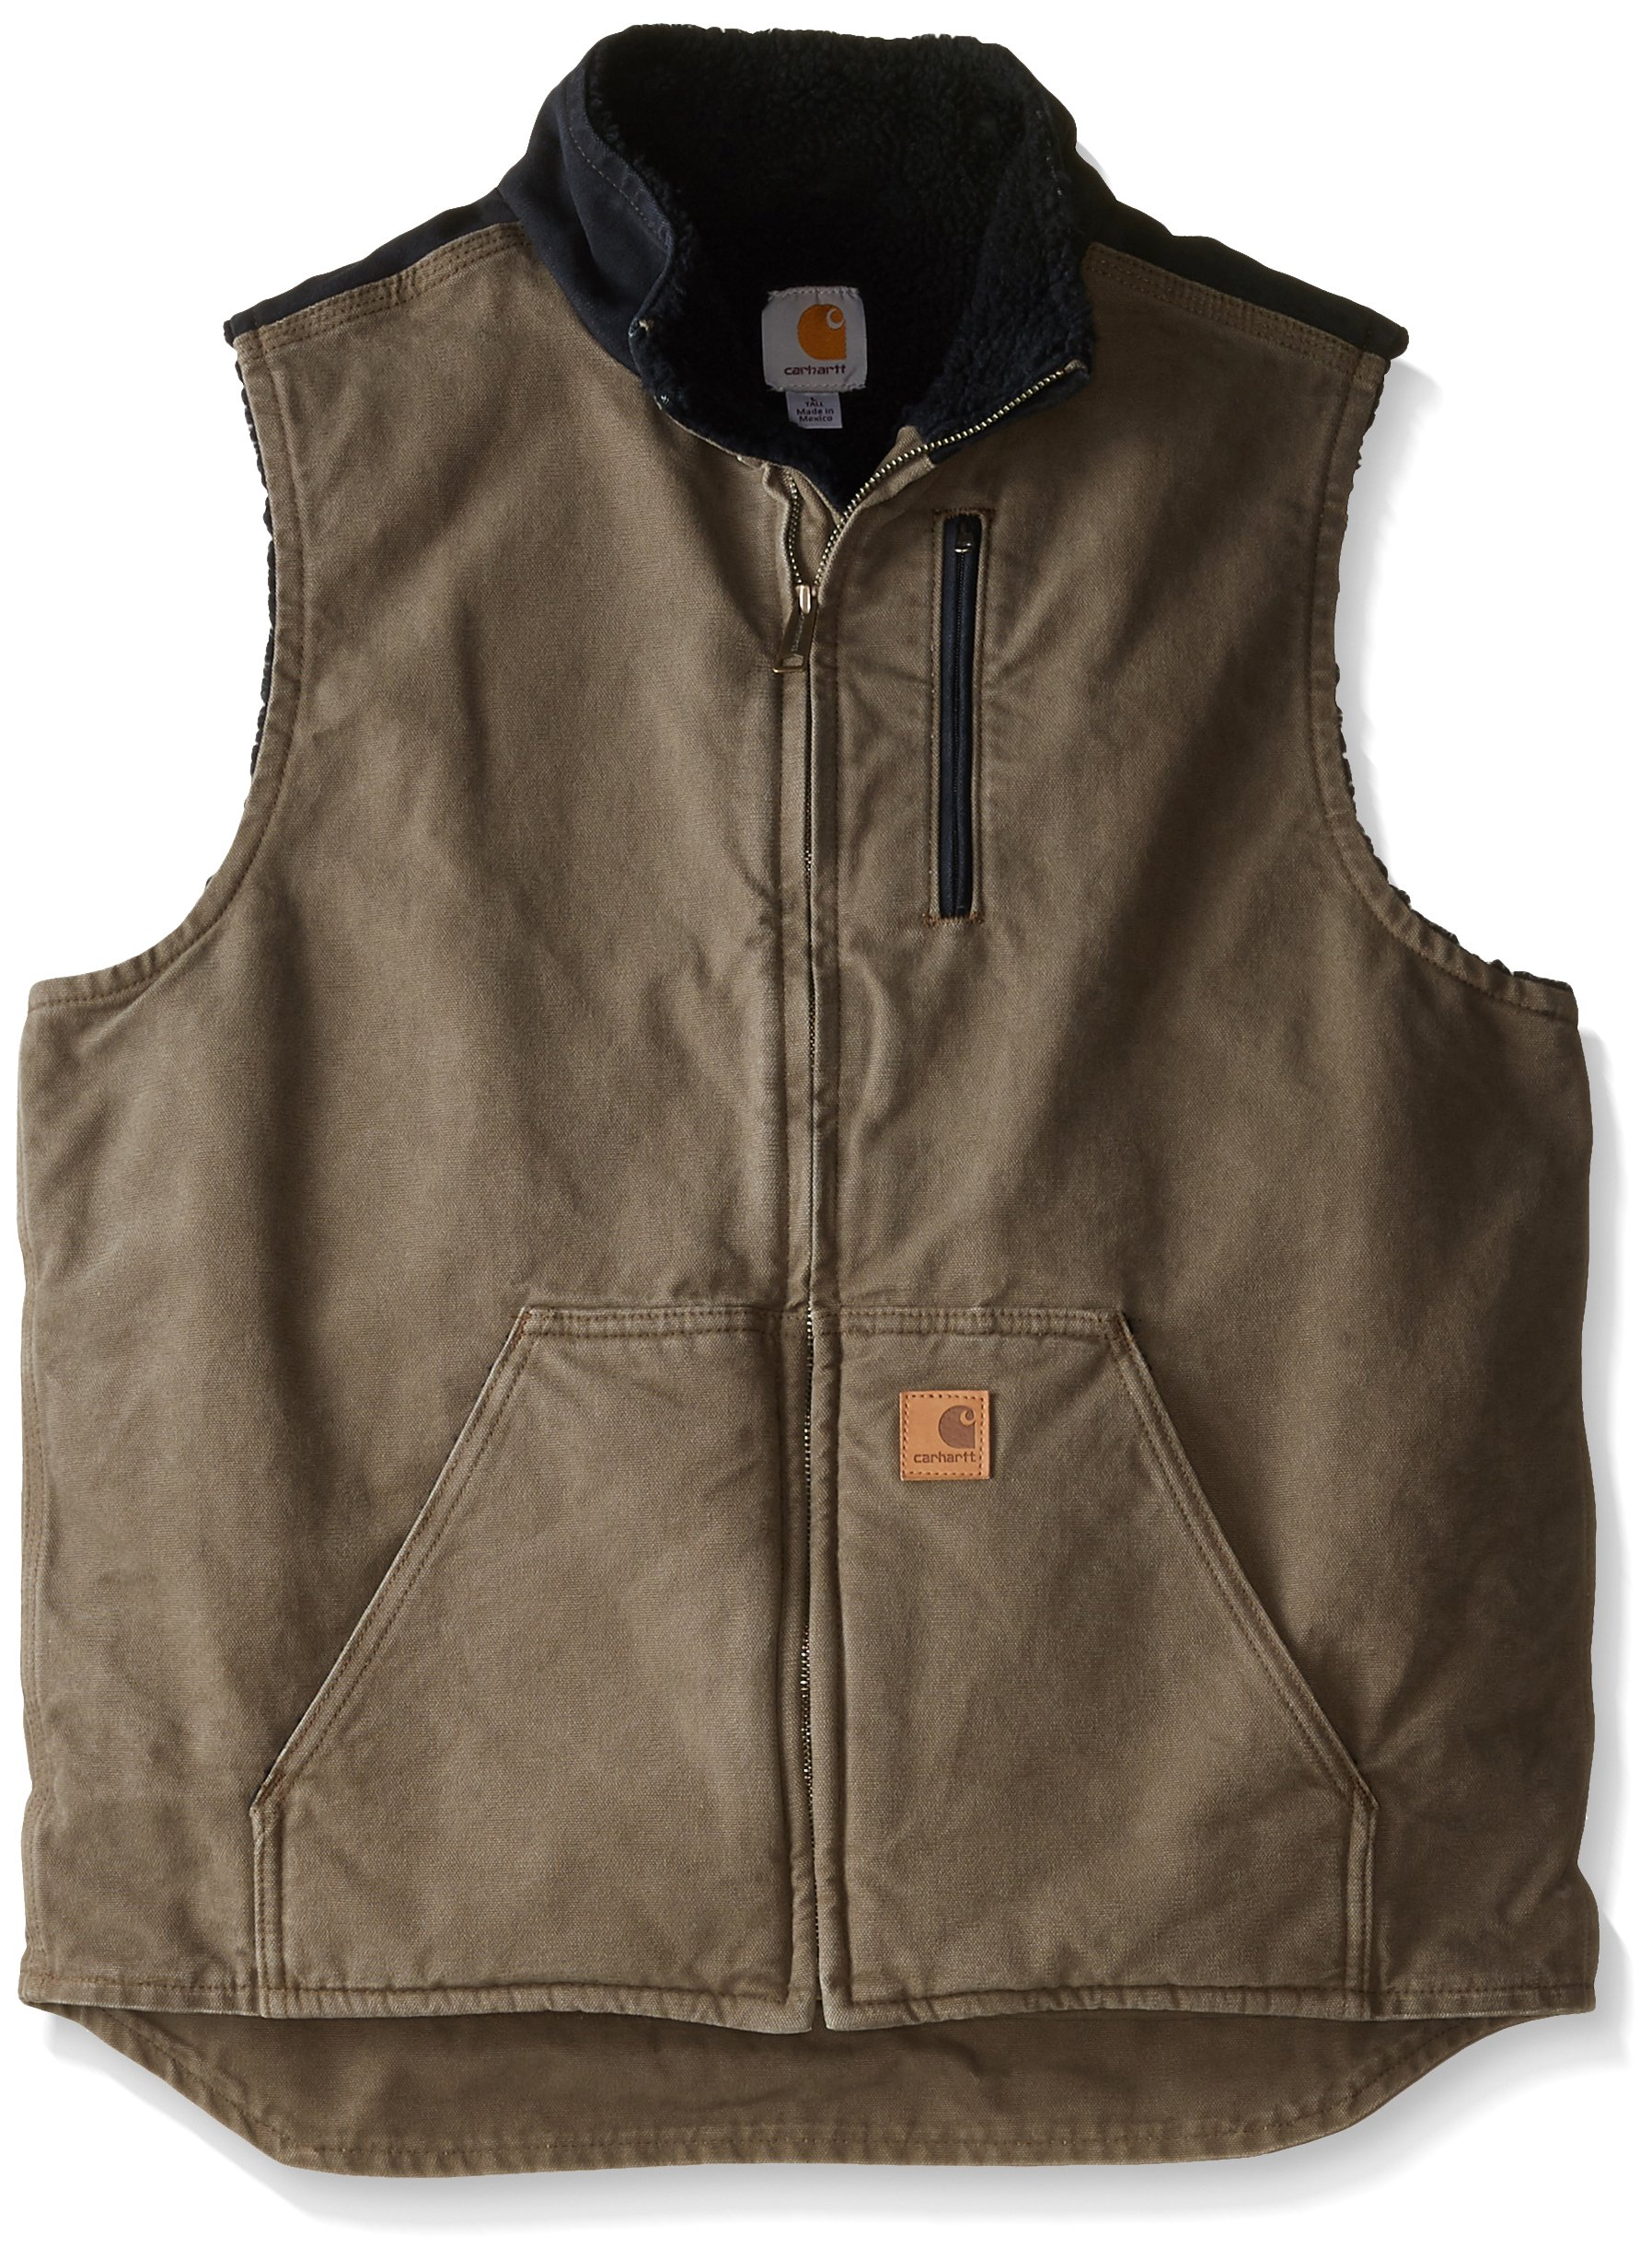 Carhartt Men's Sherpa Lined Sandstone Mock Neck Vest V33,Light Brown/Black,2X-Large